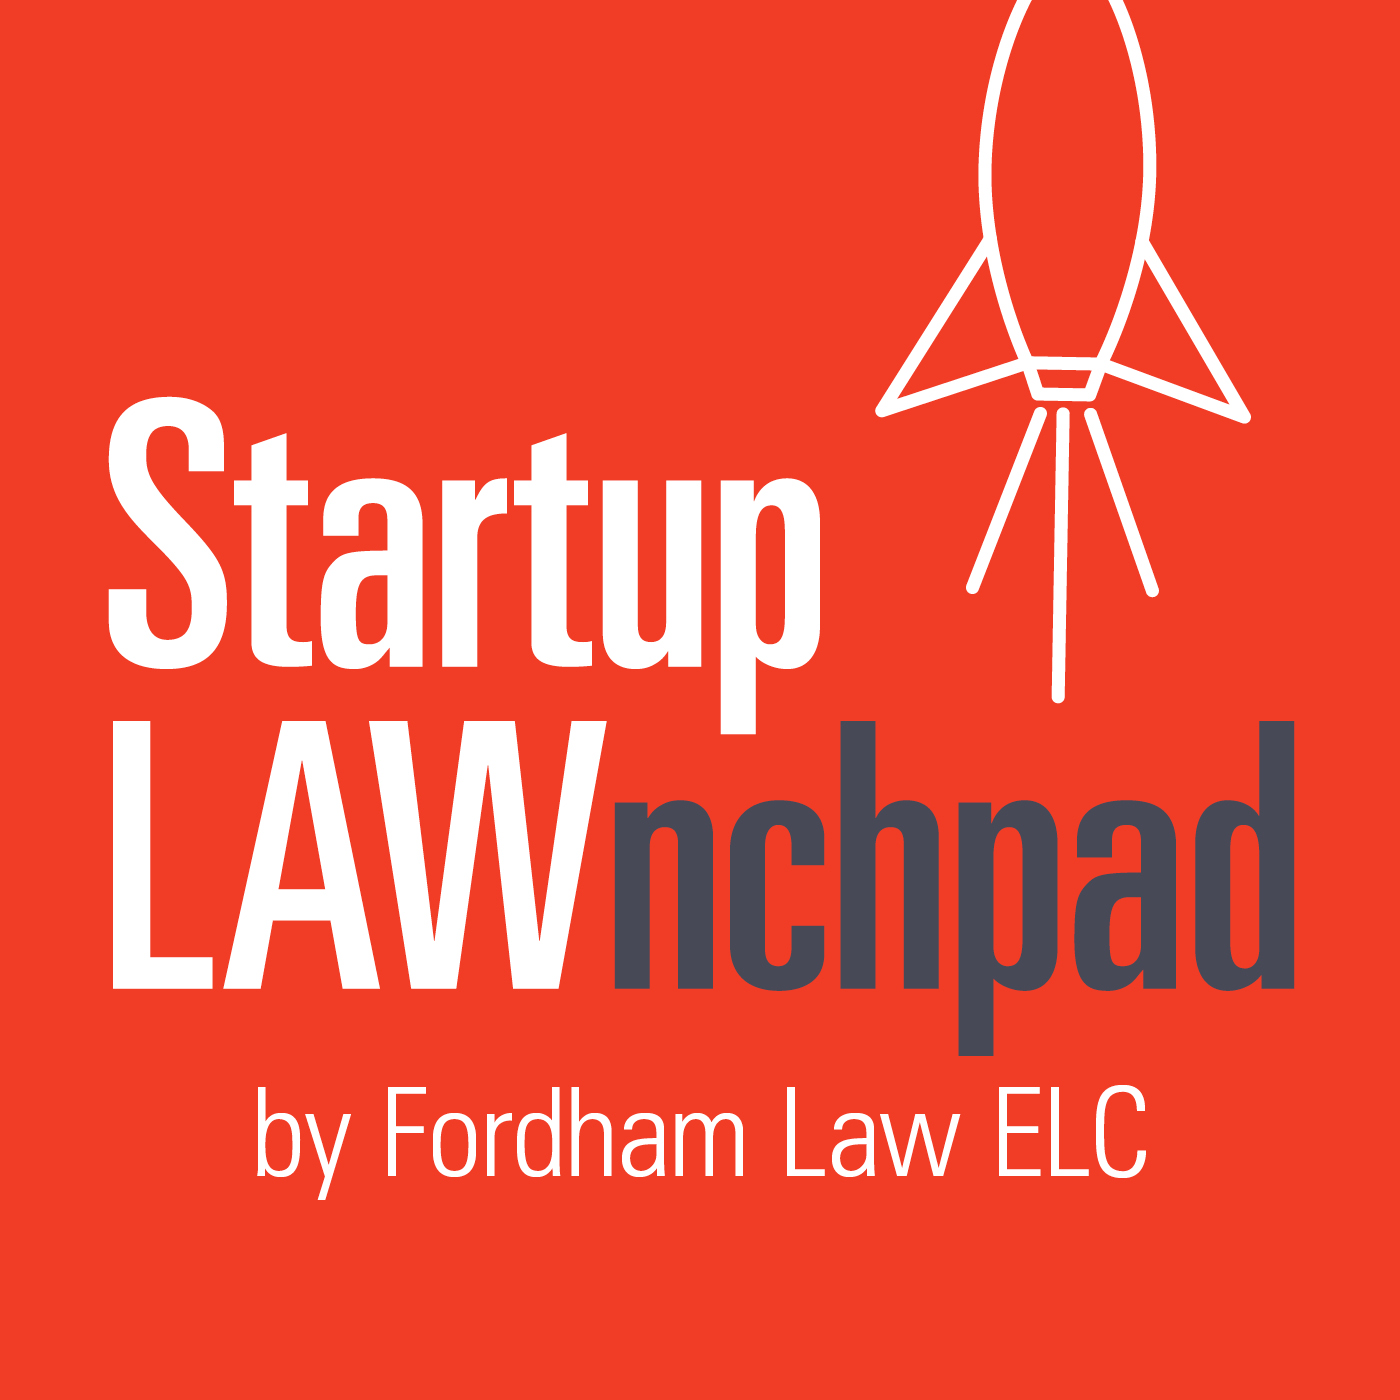 Startup LAWnchpad Podcast show art